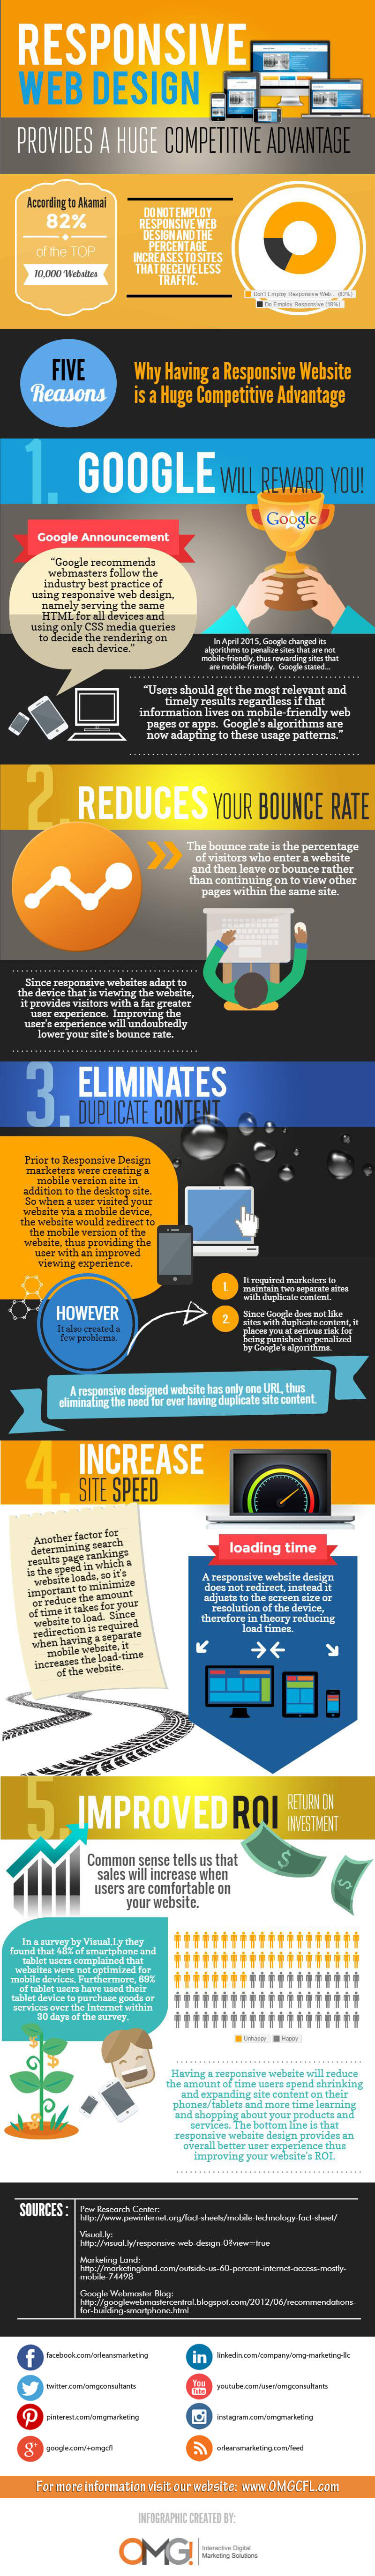 Responsive-Websites-Advantages-Infographic